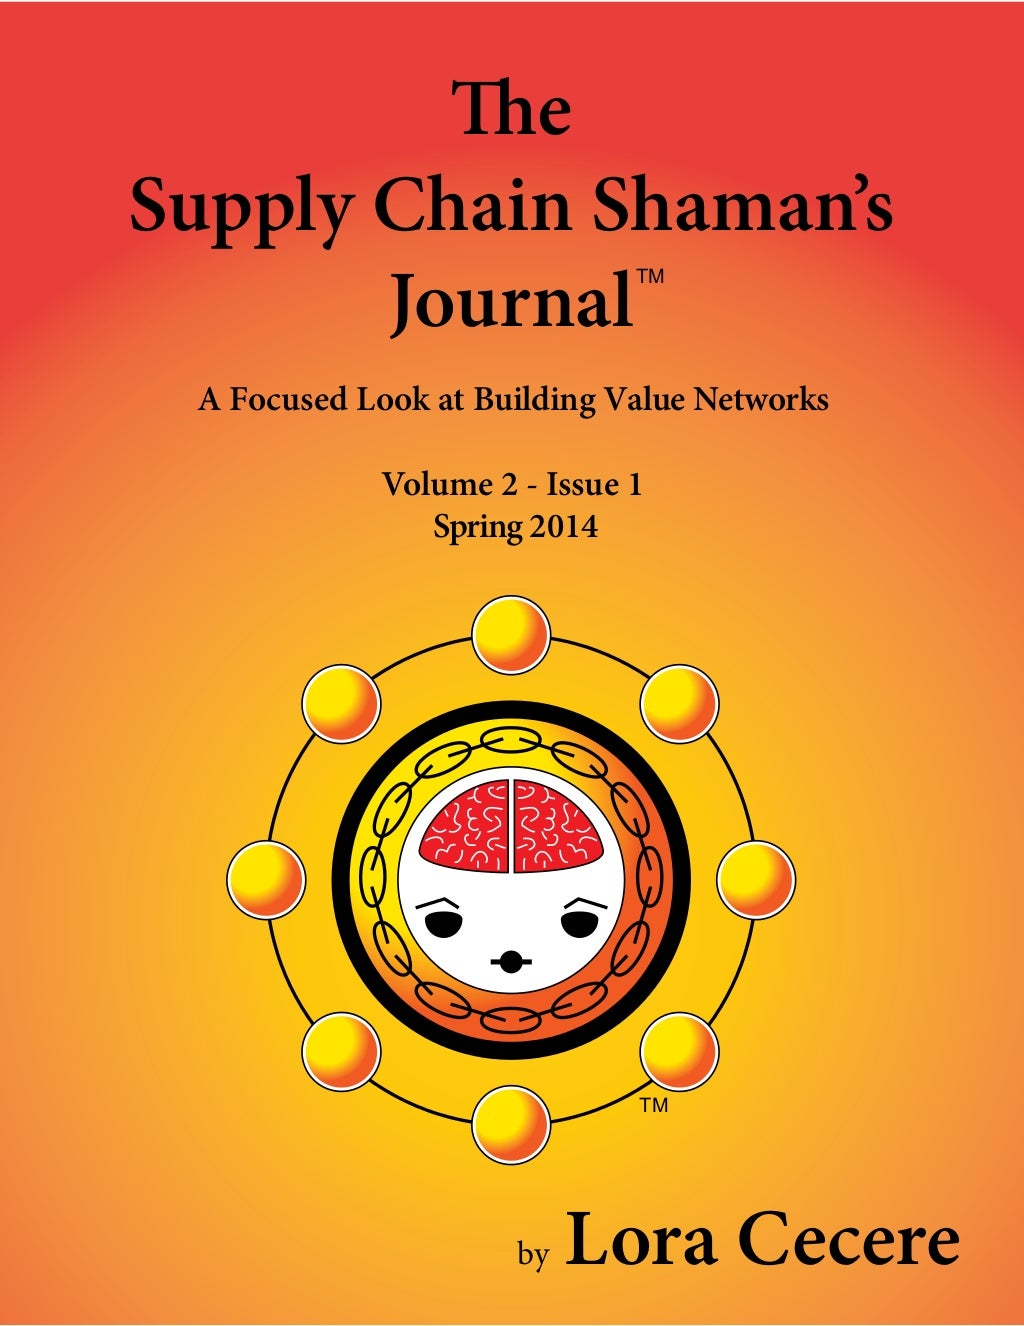 The Supply Chain Shaman's Journal - Spring 2014 - A Focused Look at Building Value Networks